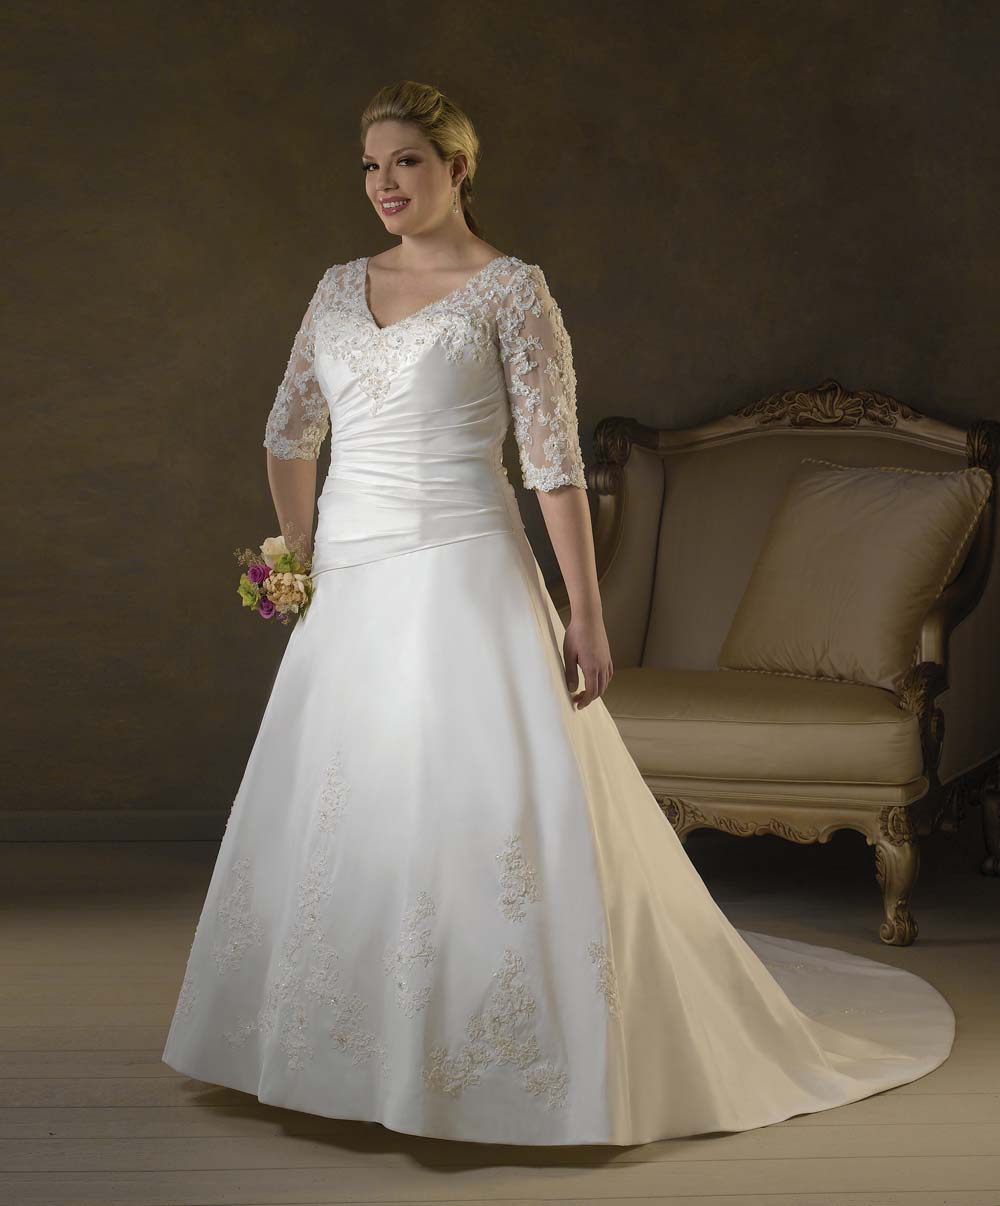 Size 0 Wedding Dresses - Amore Wedding Dresses